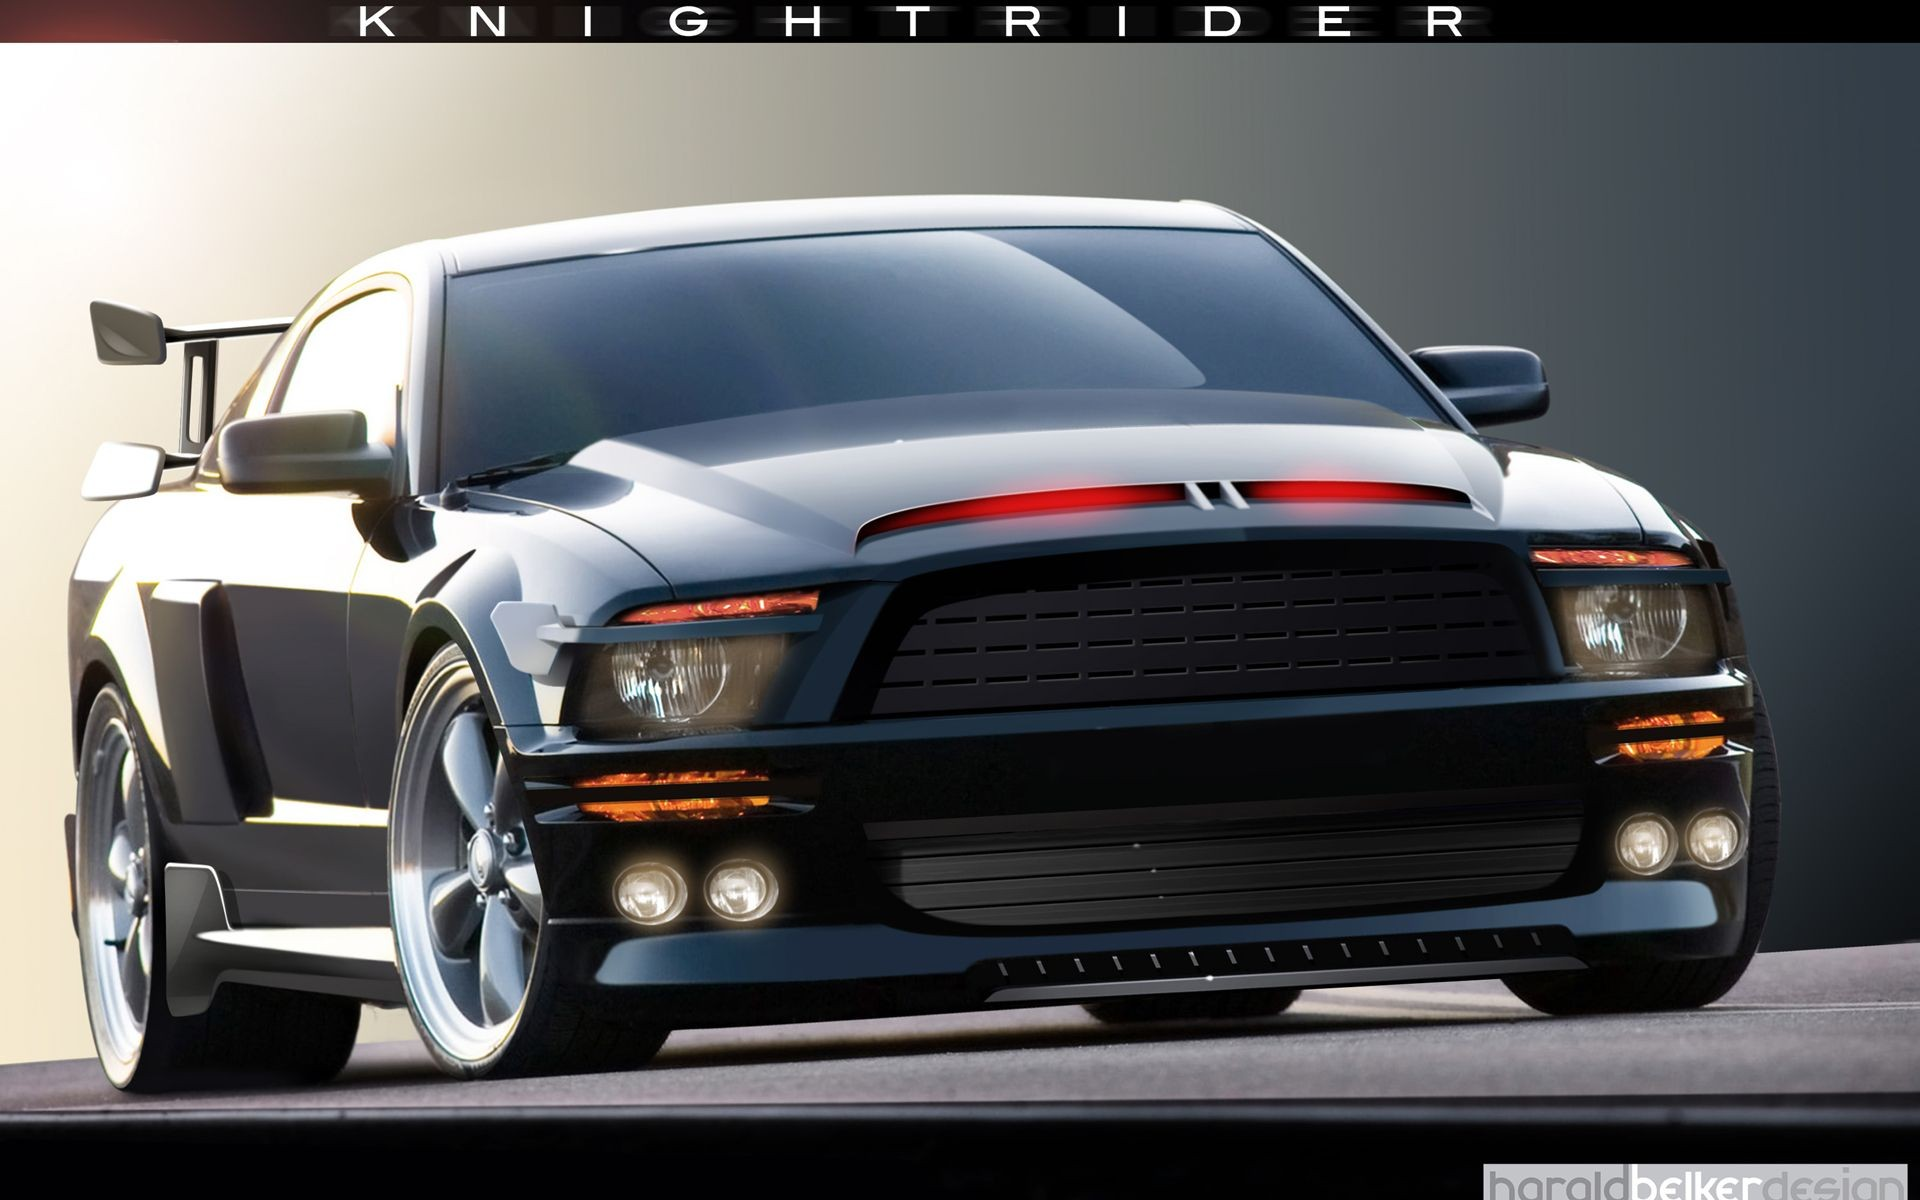 Wallpaper Knight Rider Mustang Android Wallpaper Knight Rider 1920x1200